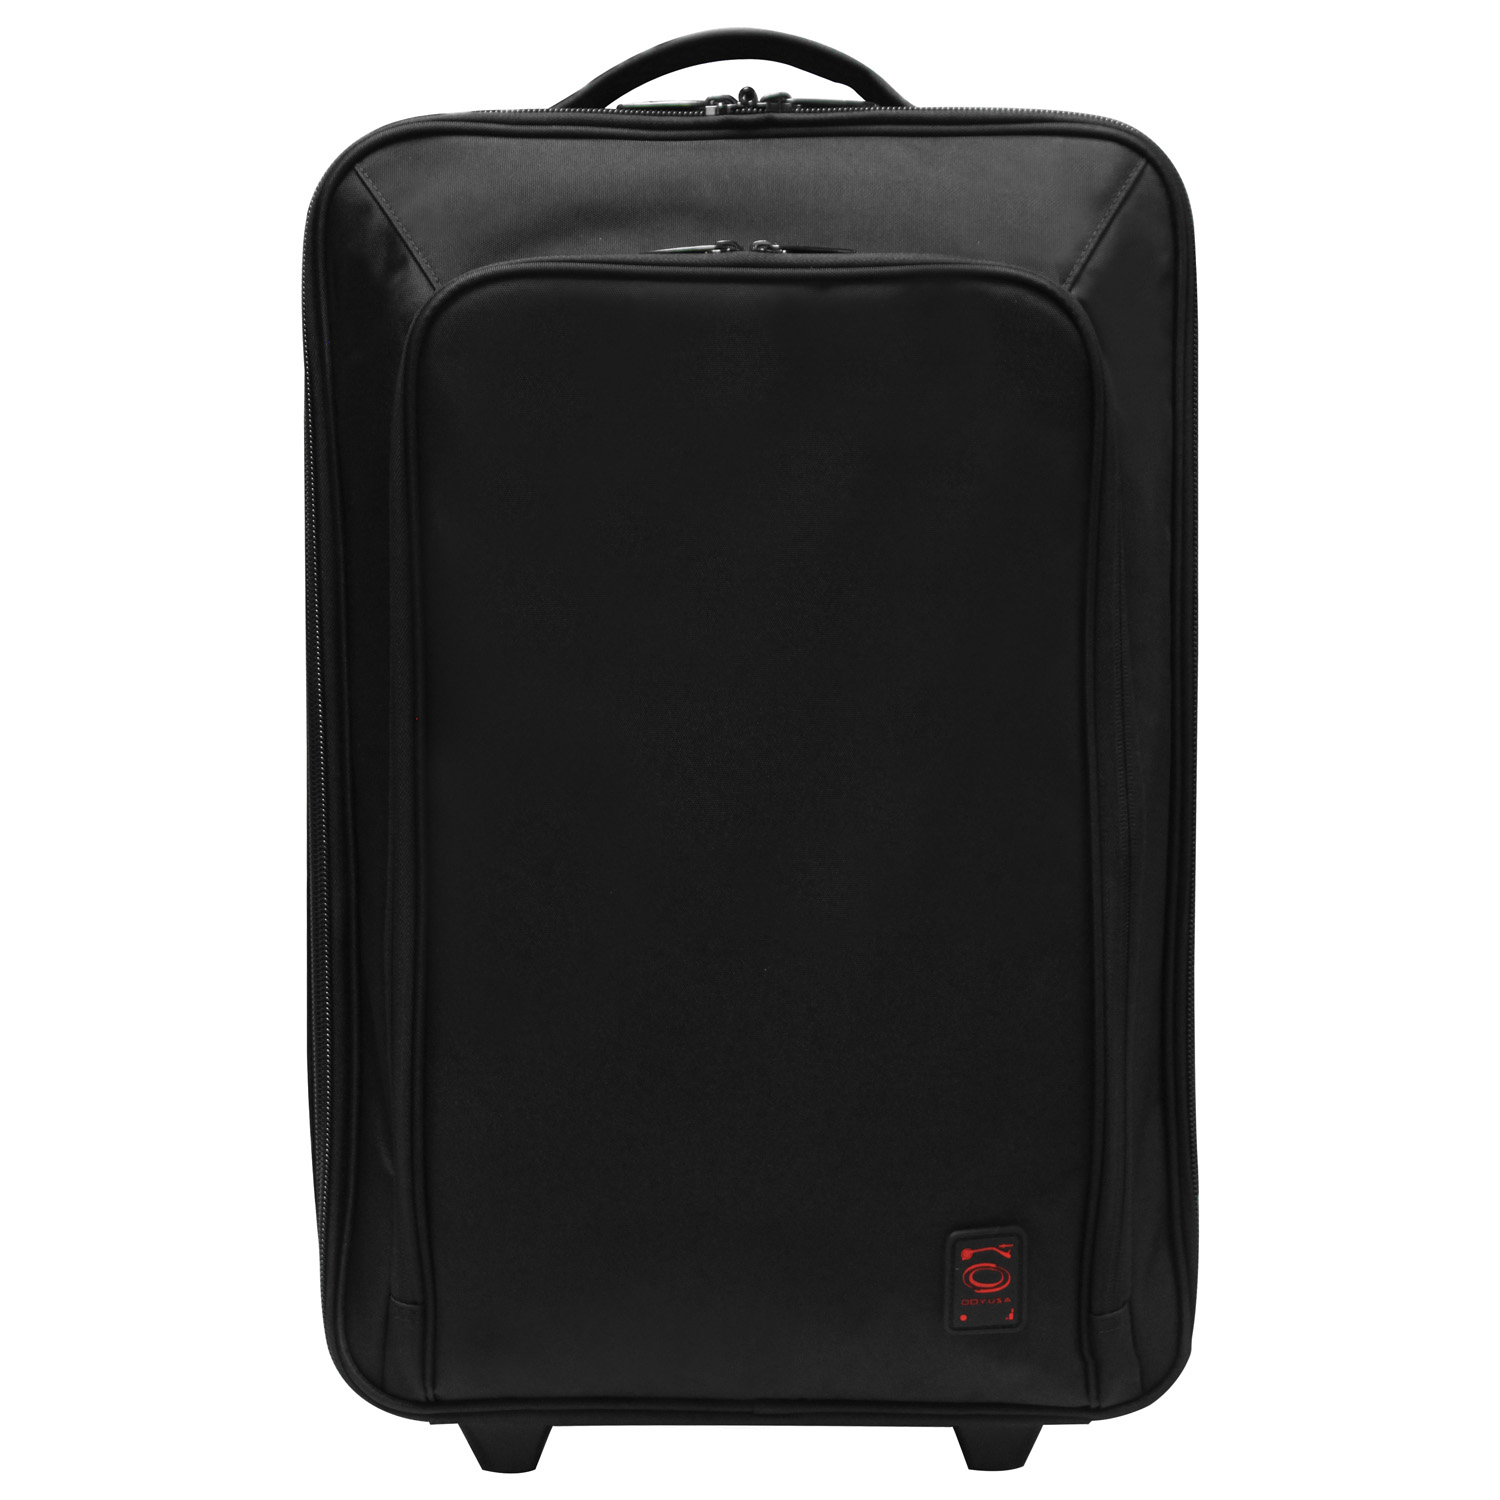 DJ Trolley Bag